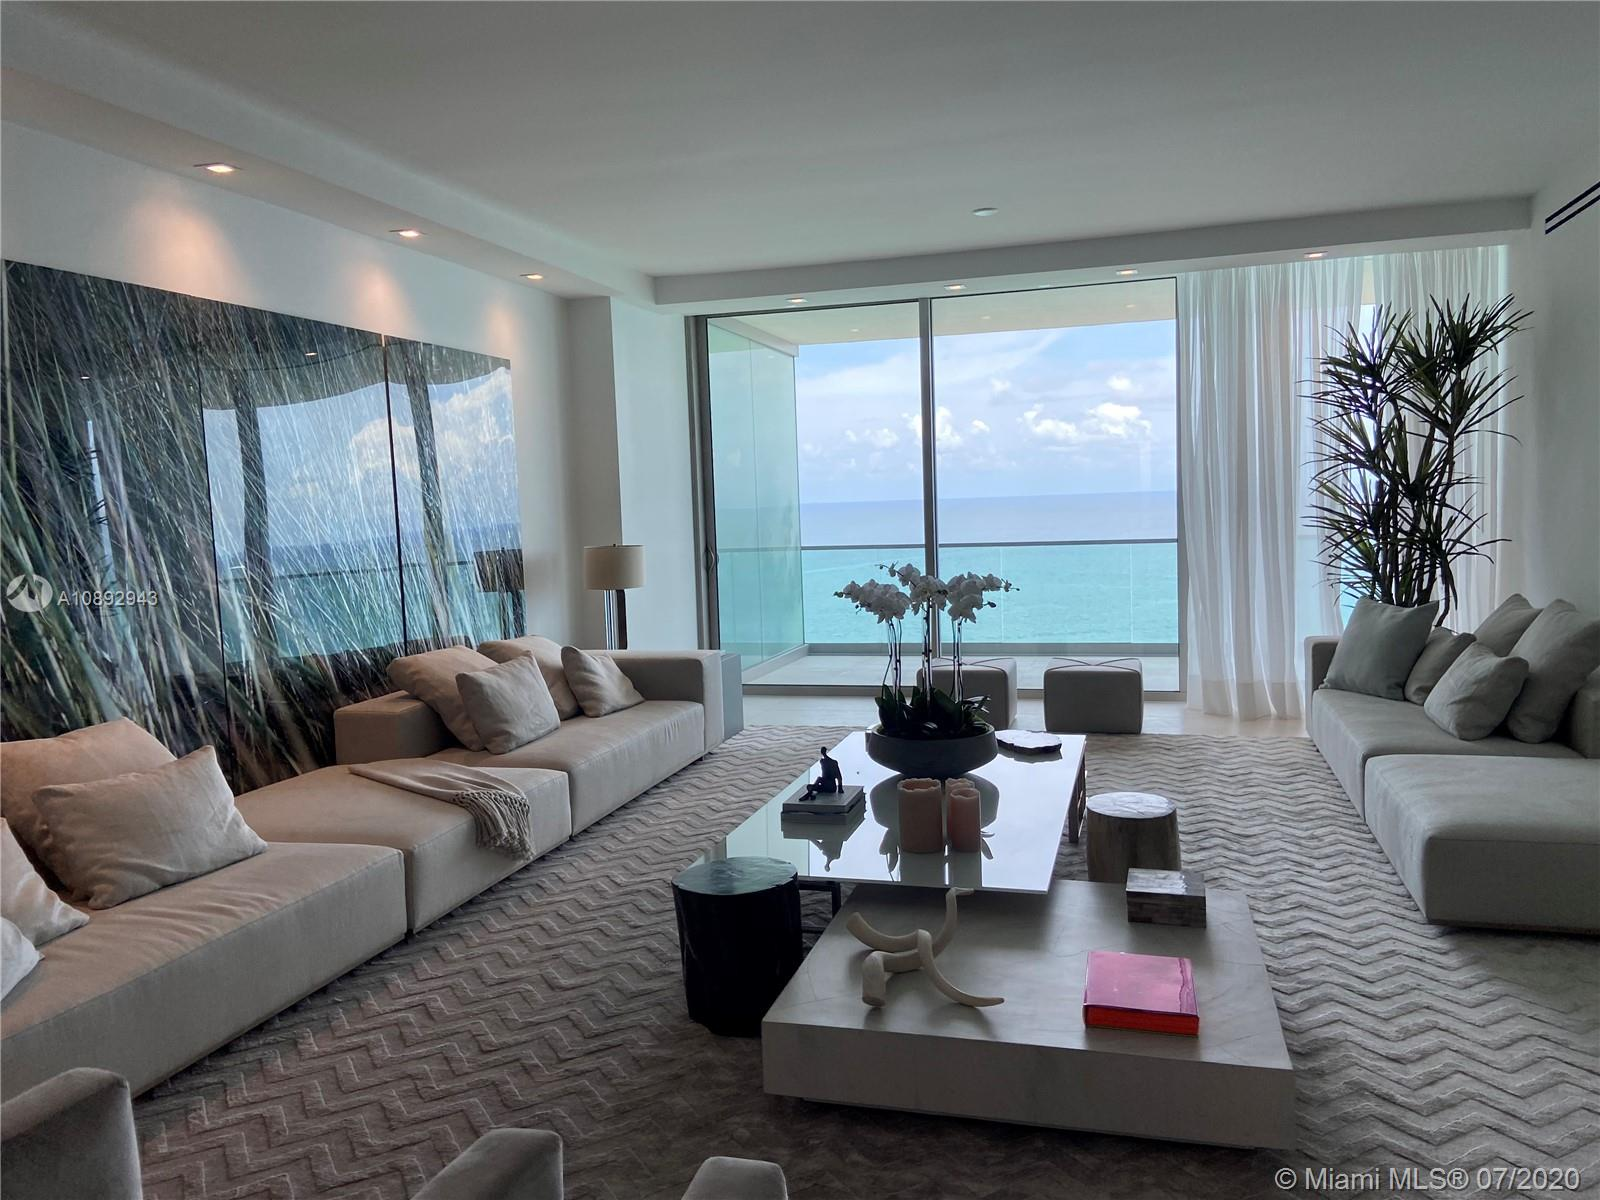 10203 Collins Ave, Unit #2603 Luxury Real Estate